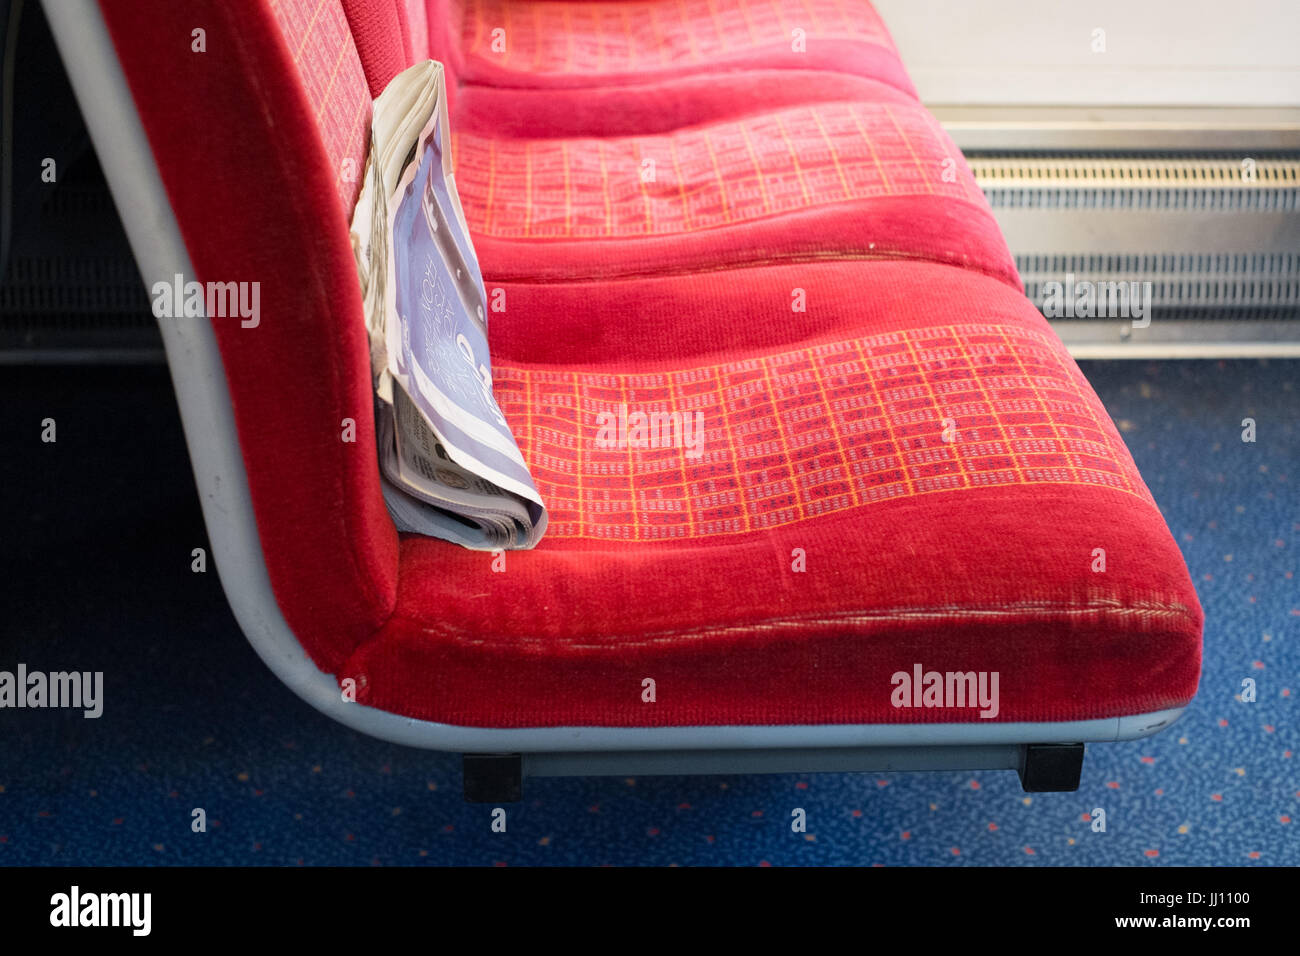 Free newspaper left on a train seat, Waterloo station, London, England. - Stock Image